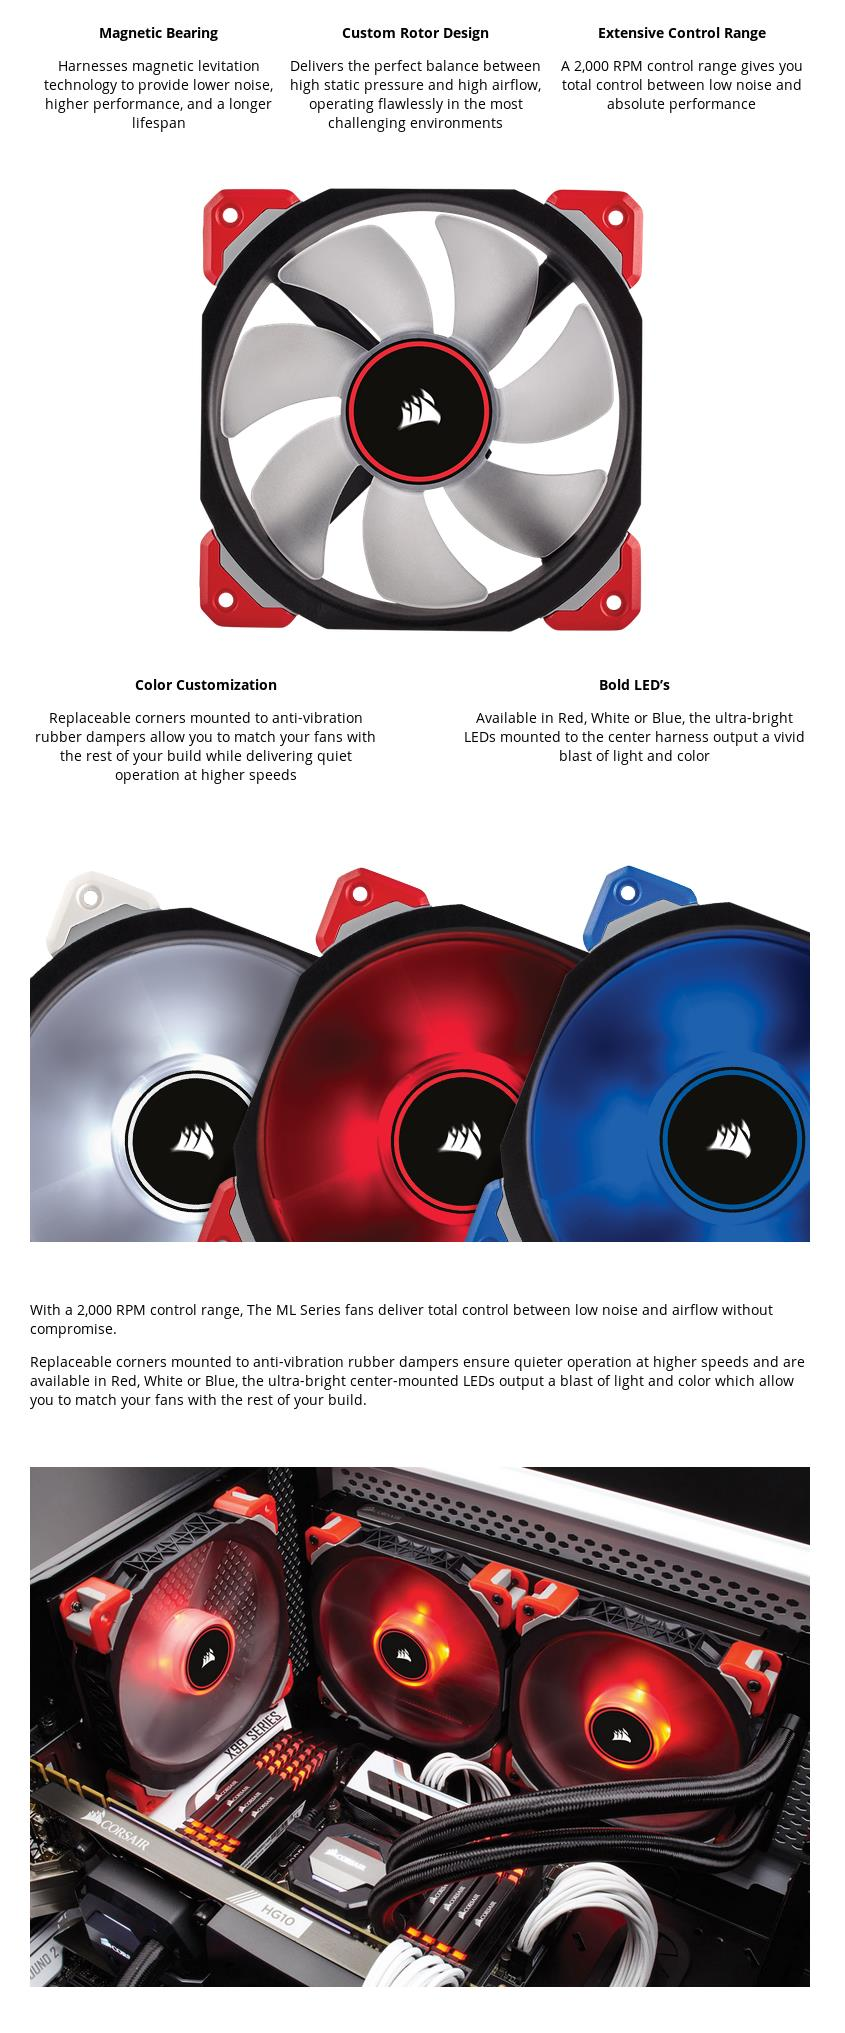 A large marketing image providing additional information about the product Corsair ML120 Pro 120mm Mag-Lev Red LED Cooling Fan - Additional alt info not provided